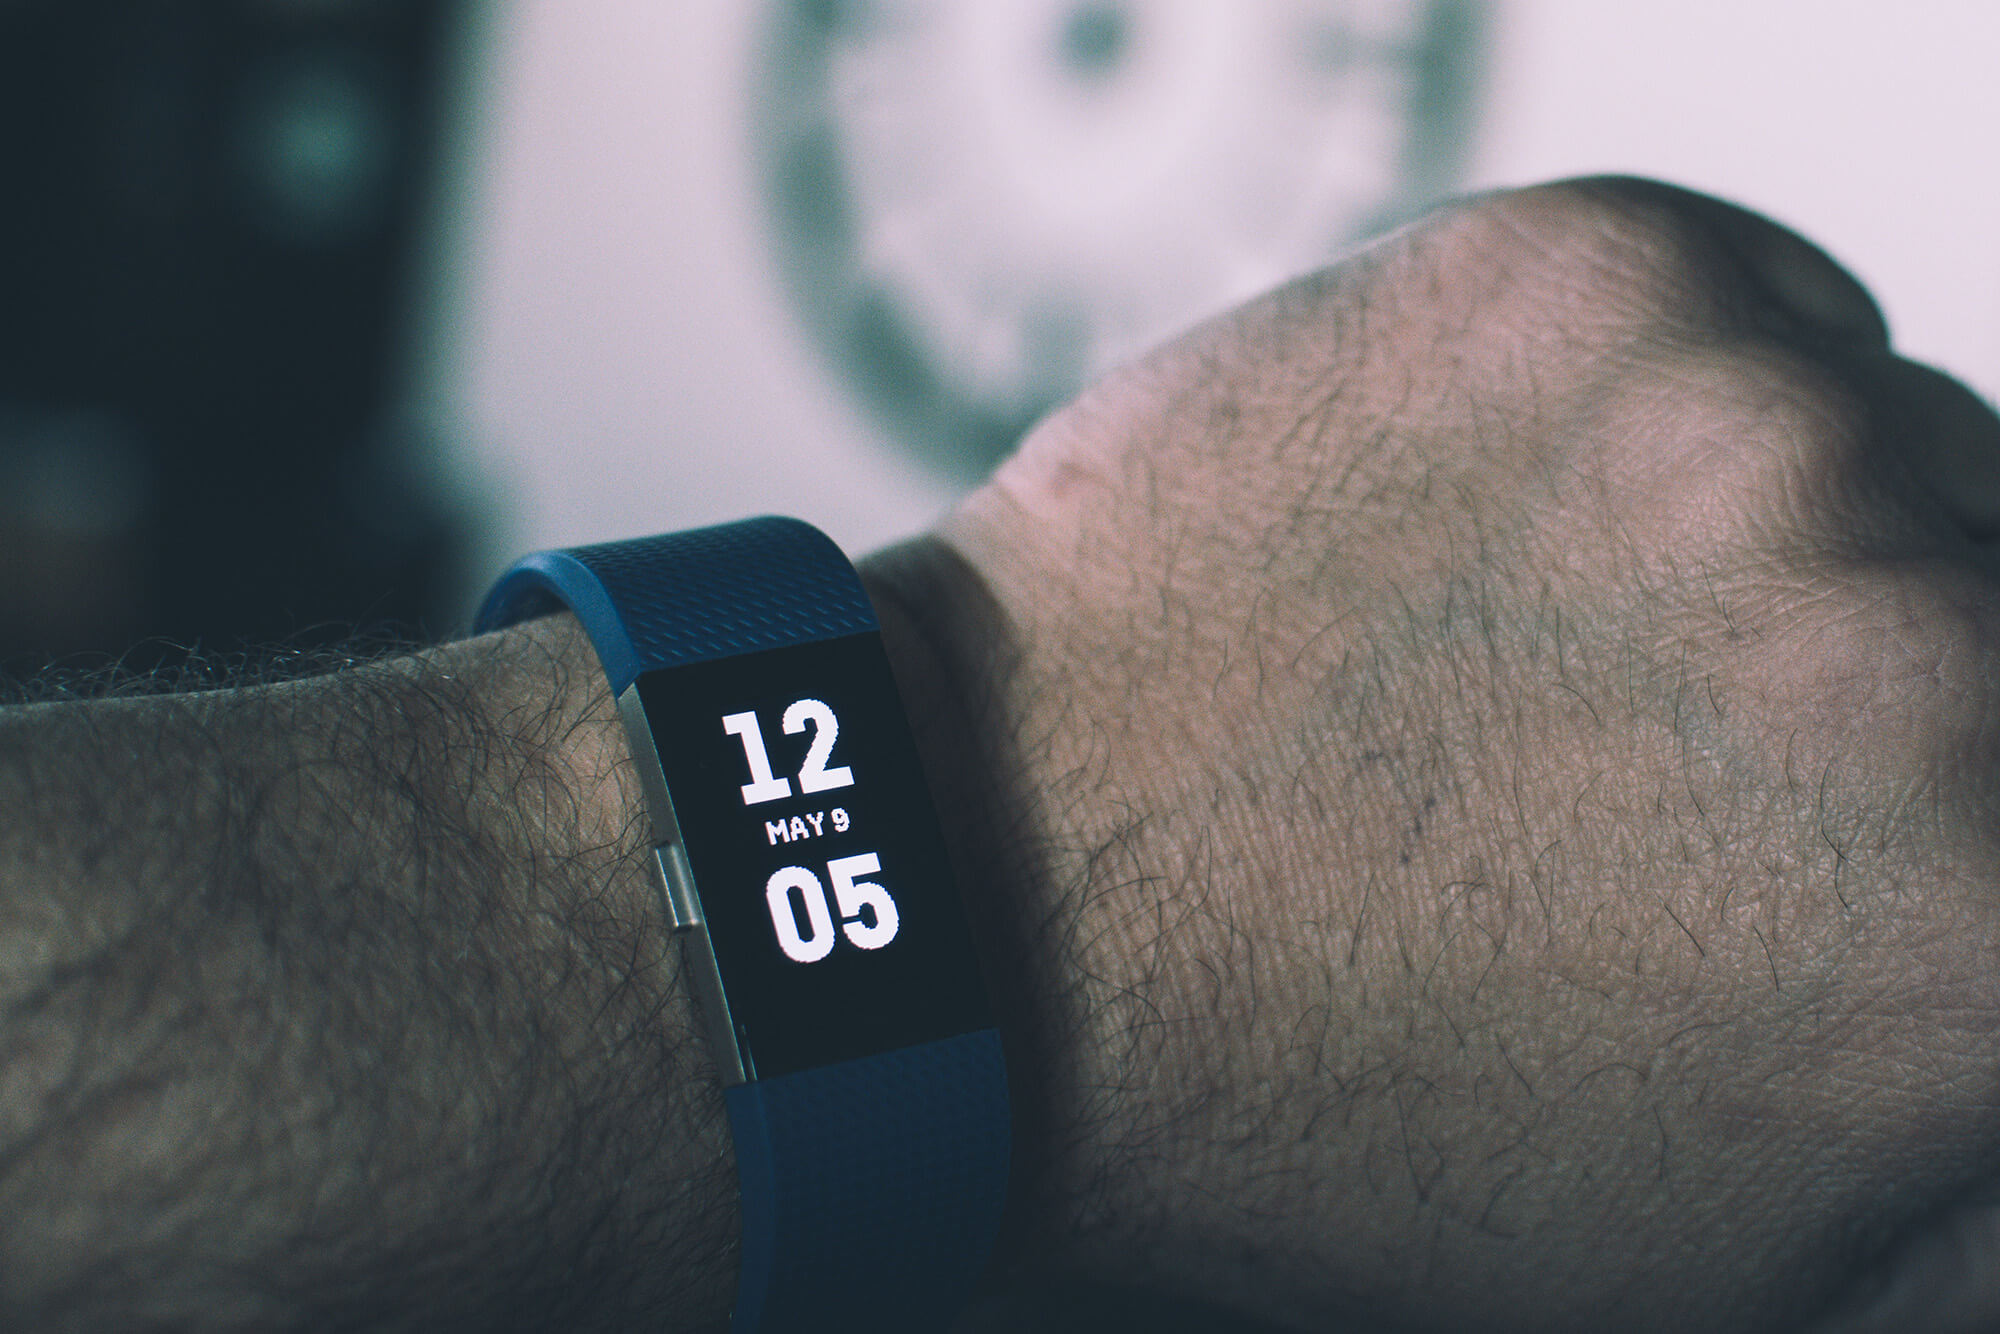 A fitness gadget on a man's wrist